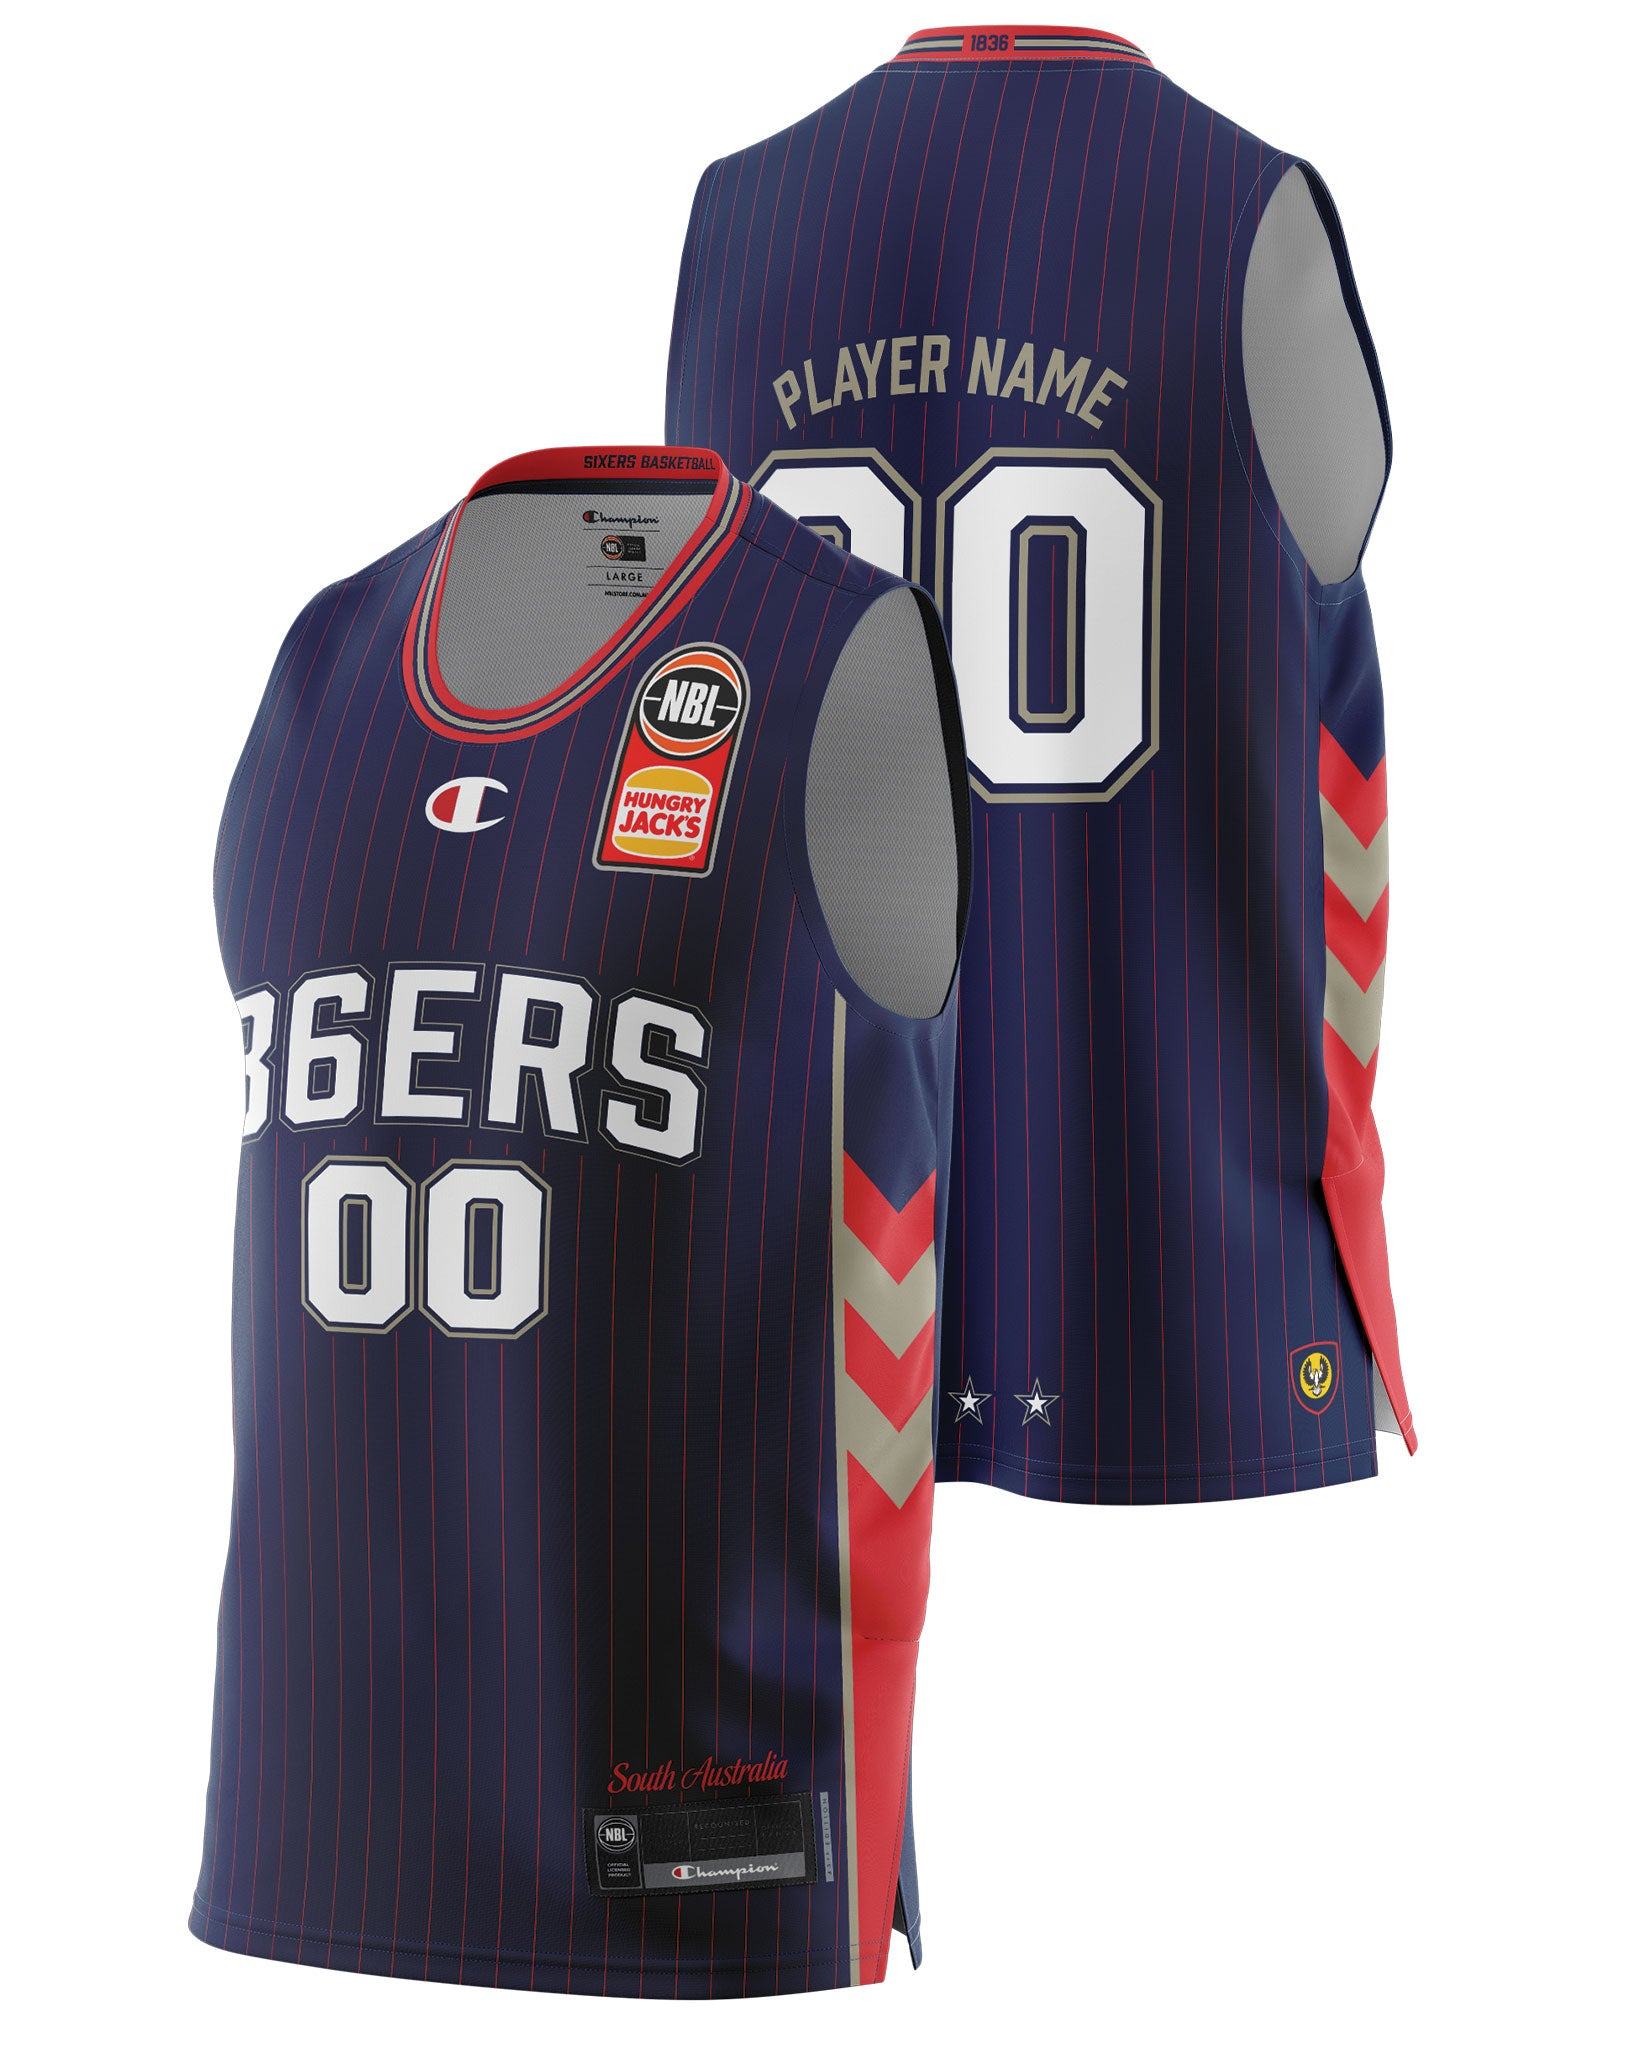 Adelaide 36ers 20/21 Authentic Home Jersey - Other Players